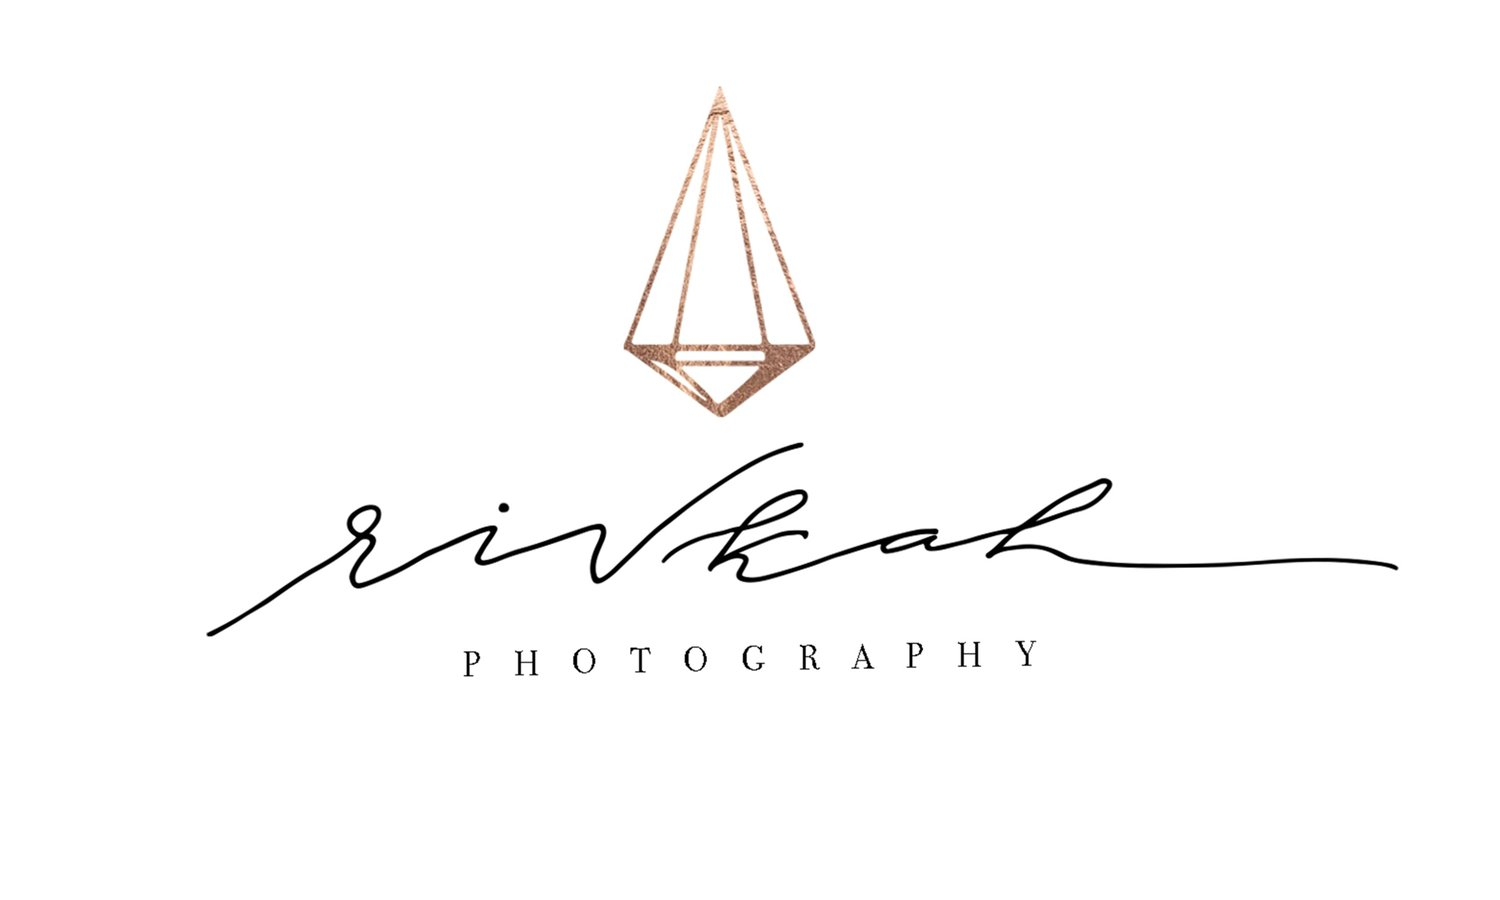 RIVKAH. PHOTOGRAPHY.